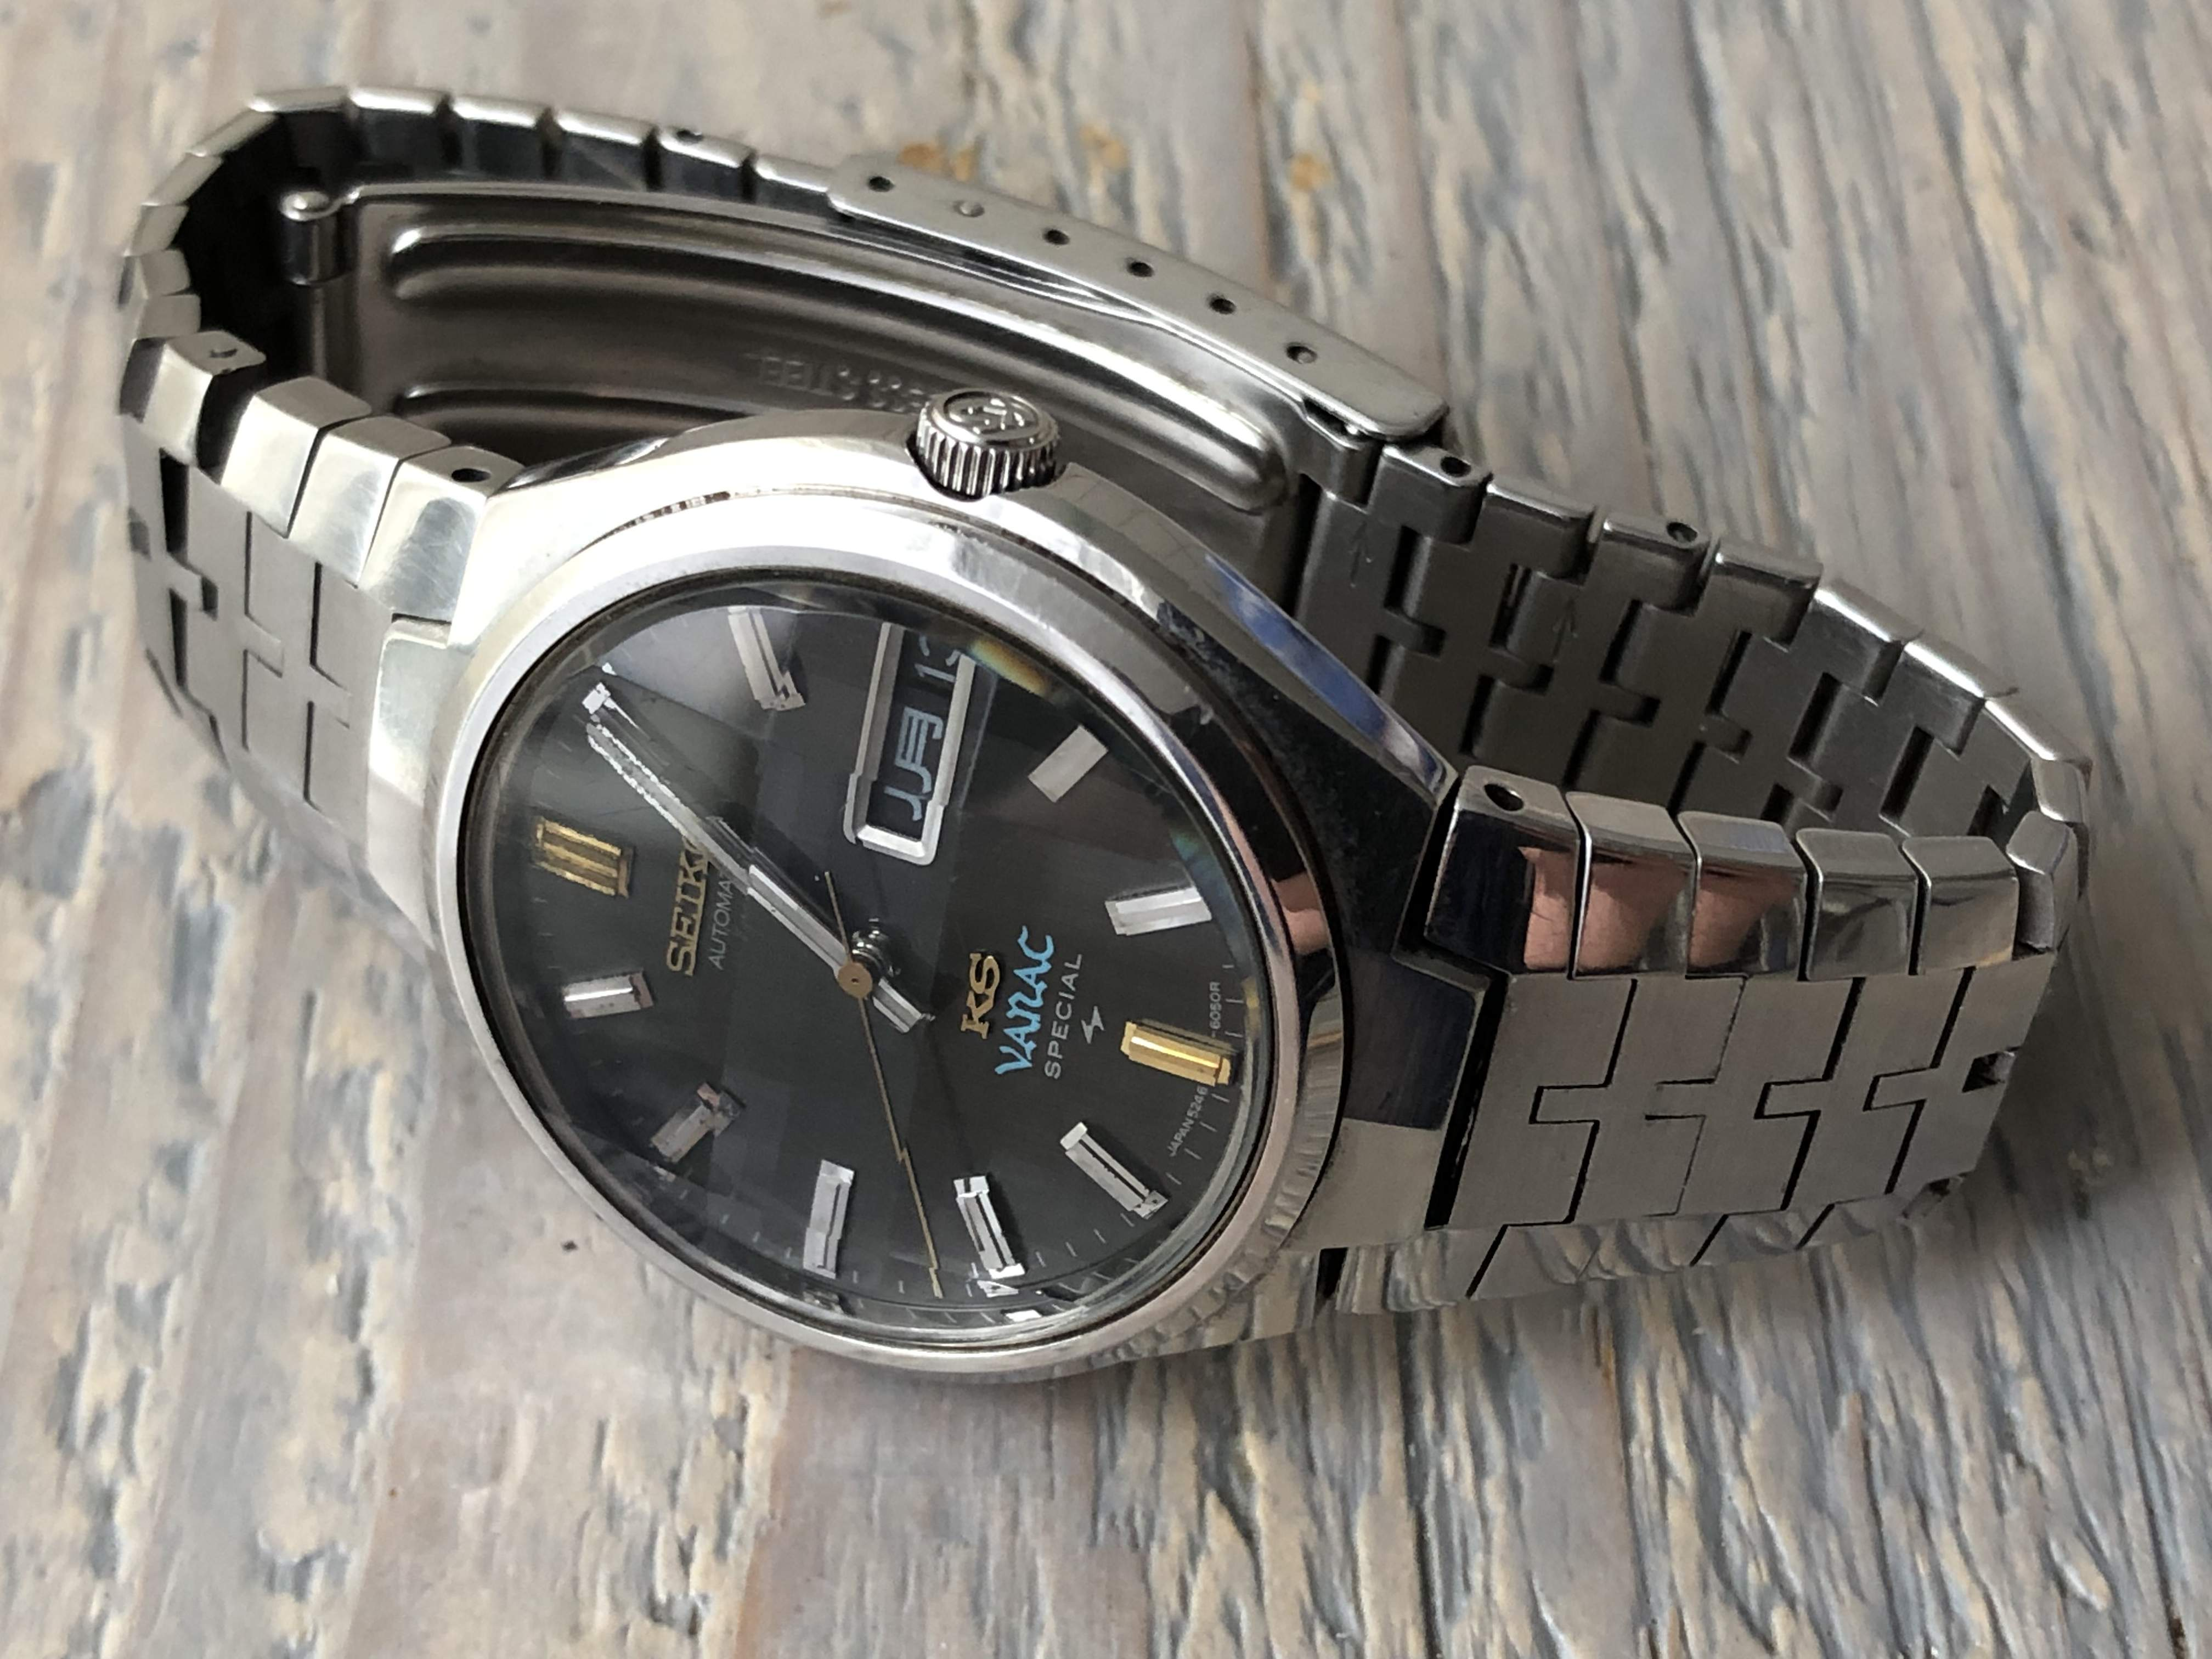 King Seiko Vanac Special 5246-6040 (Sold)